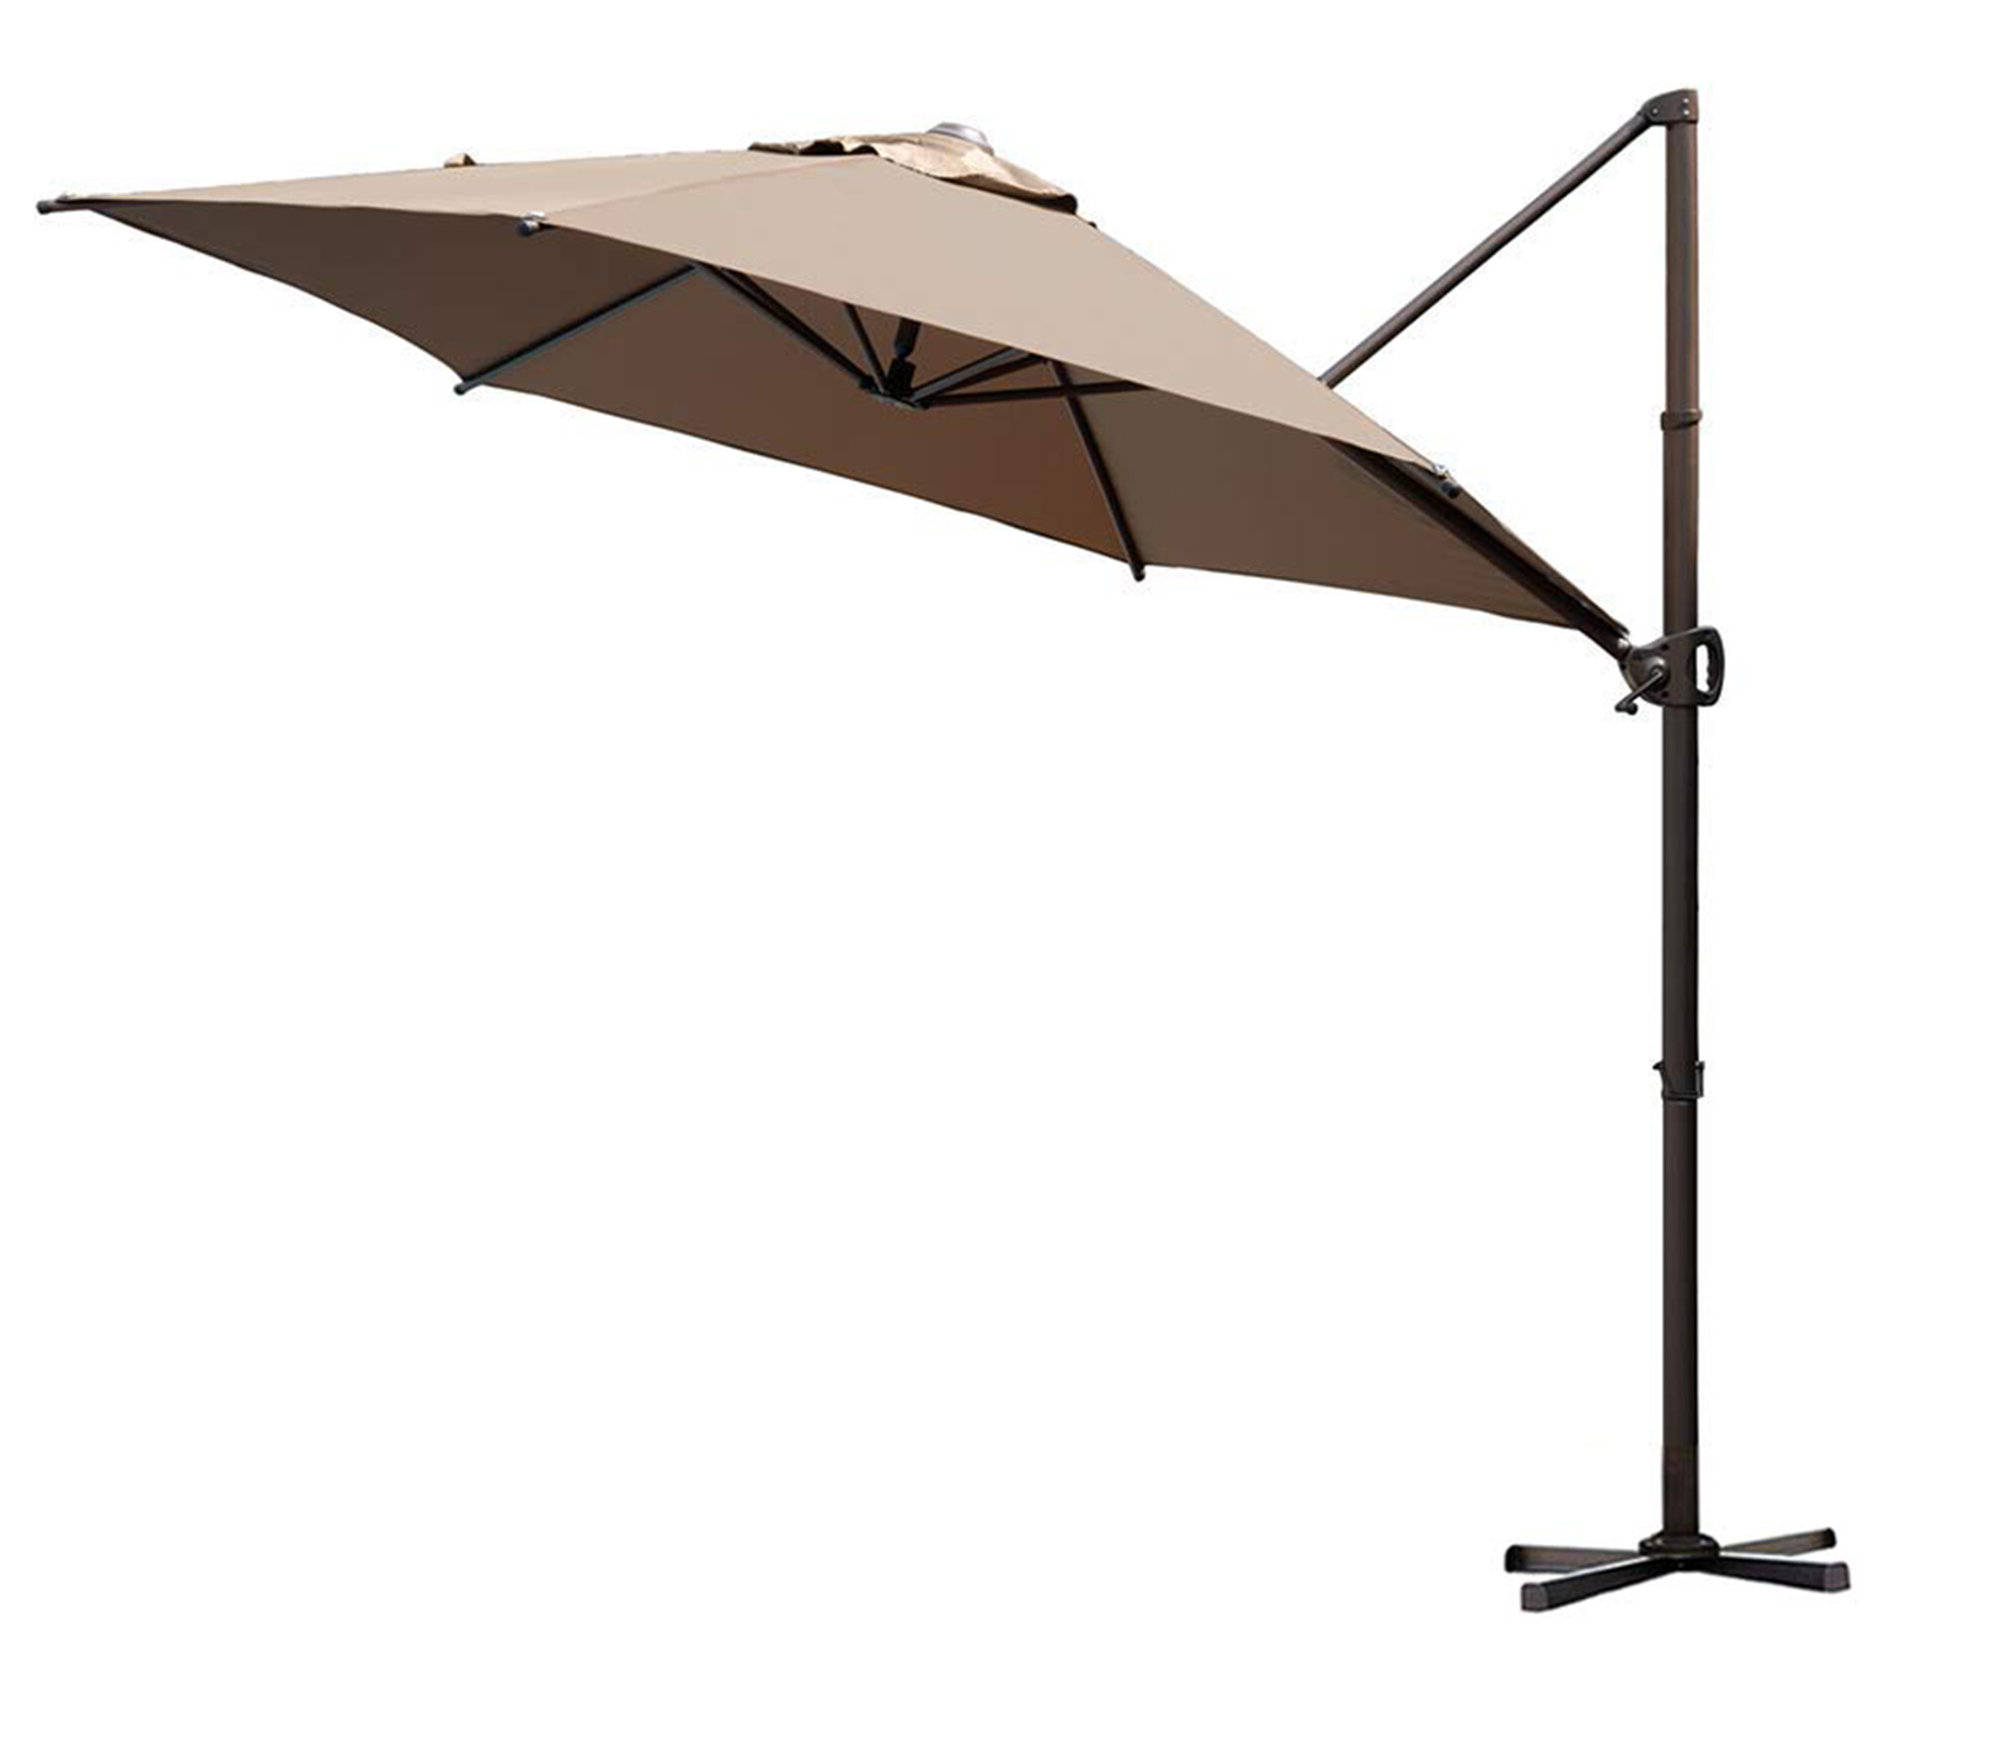 Fashionable Elaina Cantilever Umbrellas For Christopher 9' Cantilever Umbrella (View 5 of 20)